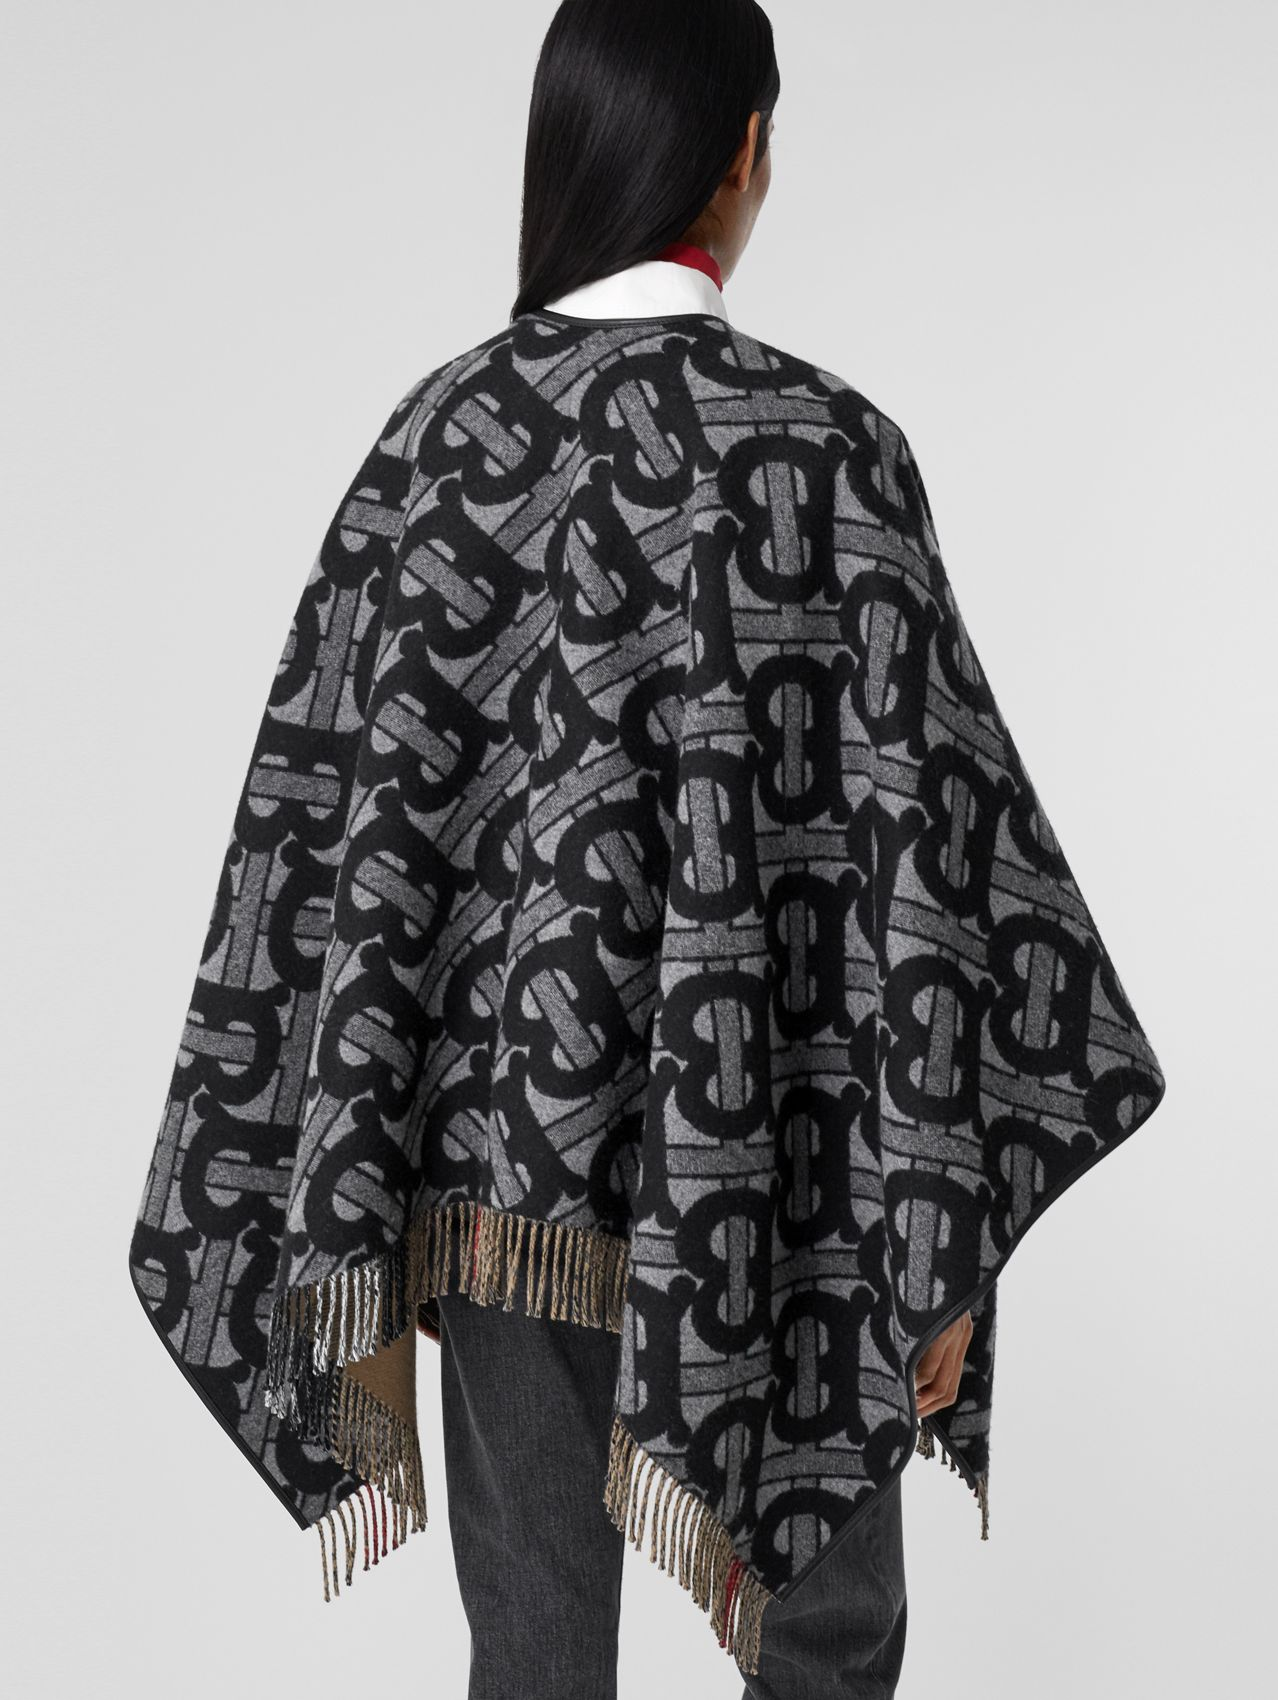 Monogram Merino Wool Cashmere Jacquard Cape in Graphite